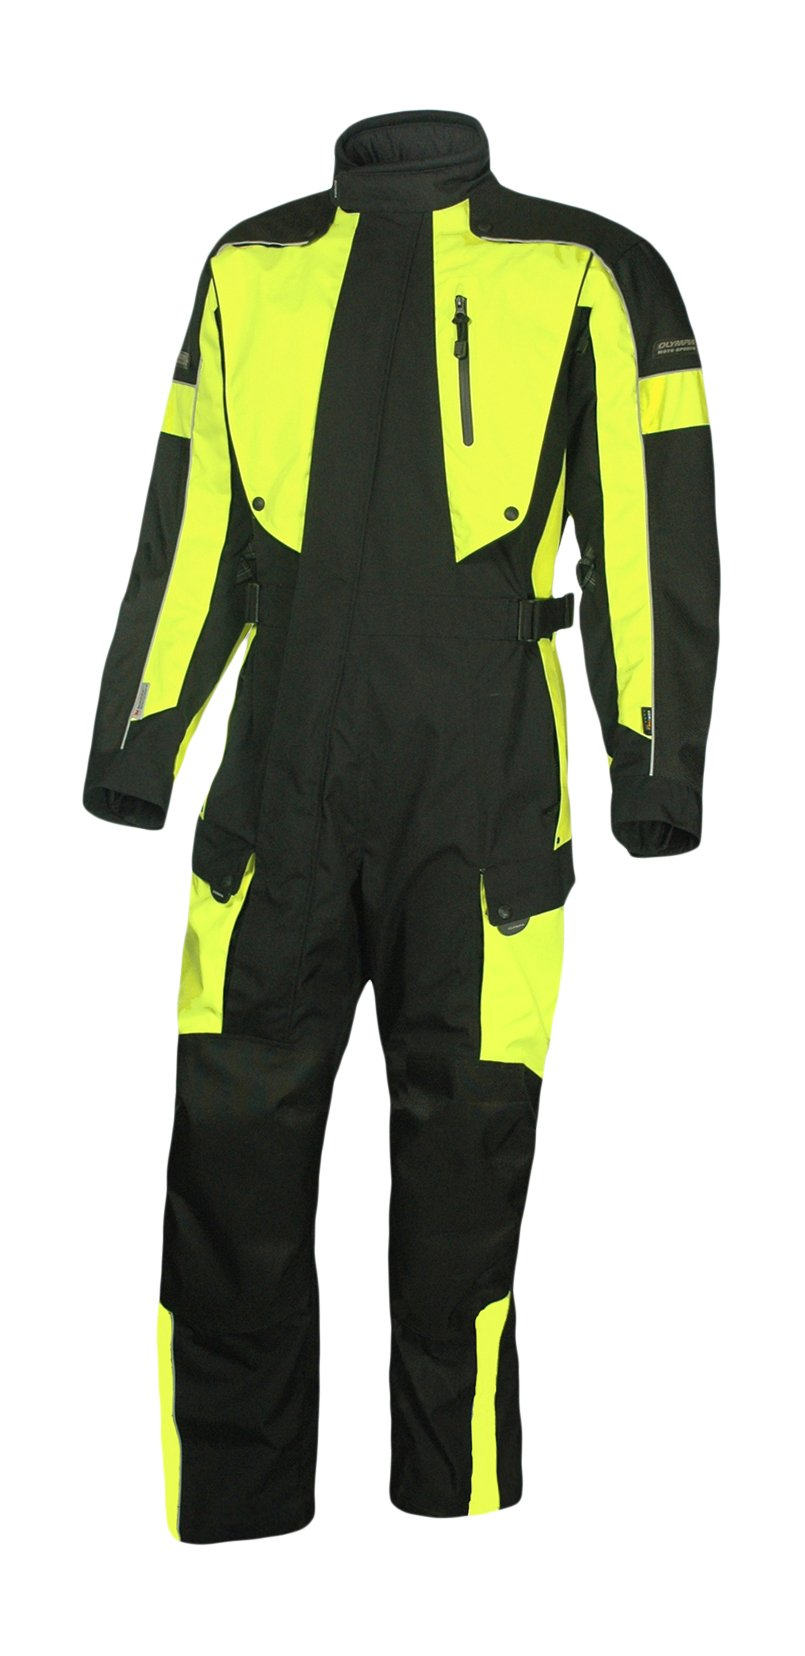 Olympia Moto Sports Men's Odyssey Vent Tech Suit (Black/Neon Yellow, Large) by Olympia Moto Sports